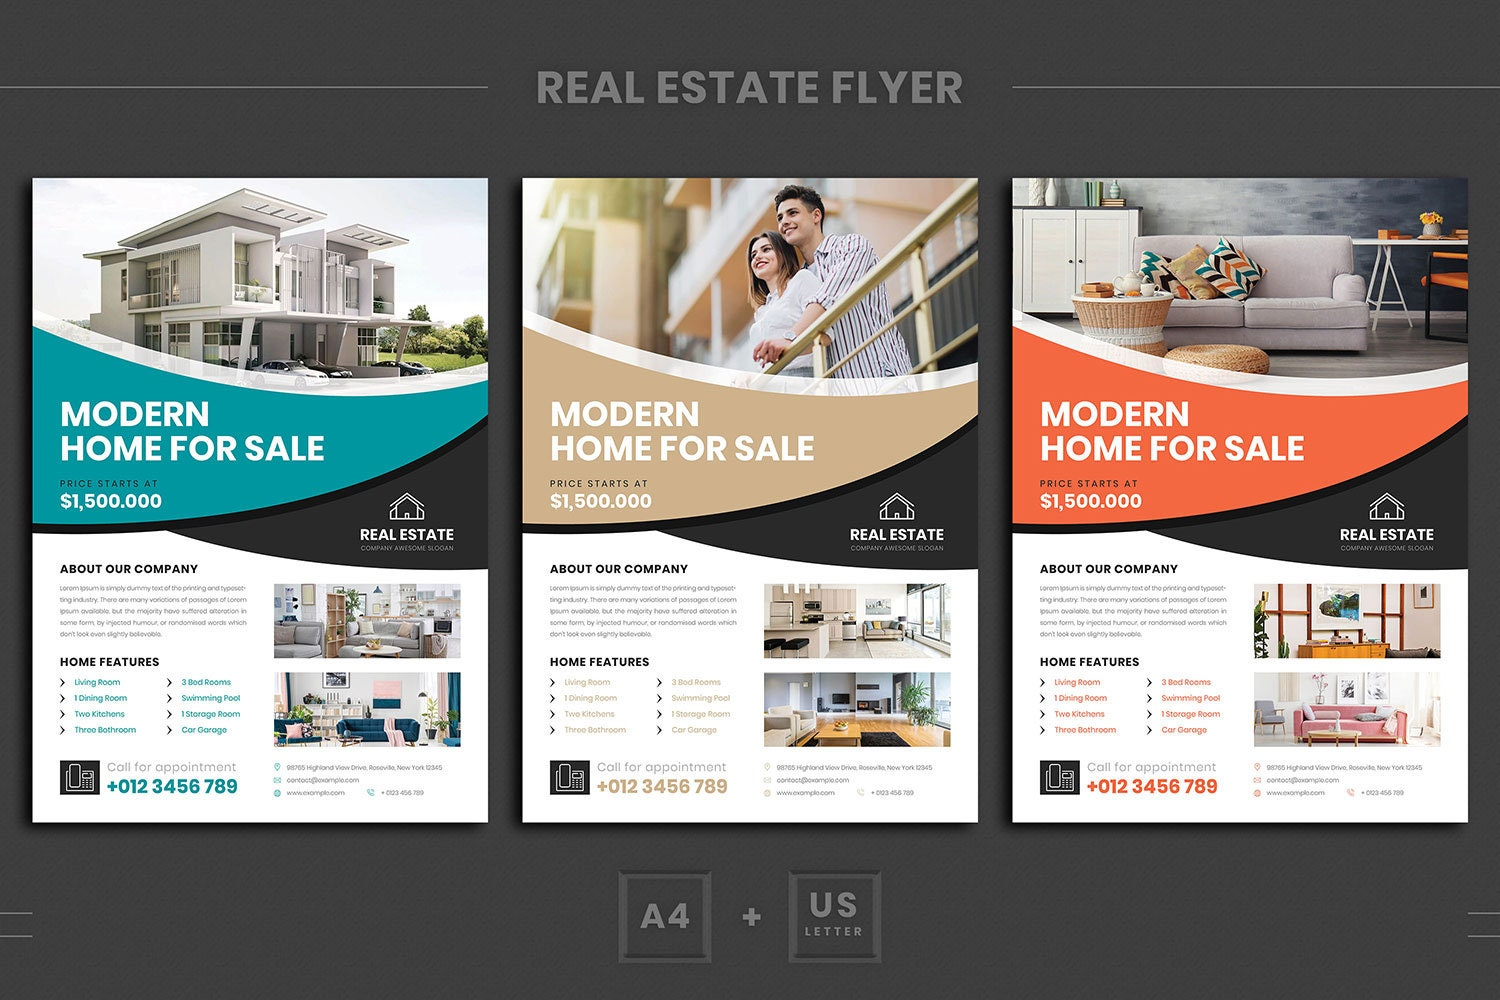 Real estate flyer template | Apartment sale flyer | Luxurious real estate |  Modern real estate template | Promotional flyer | Single sided